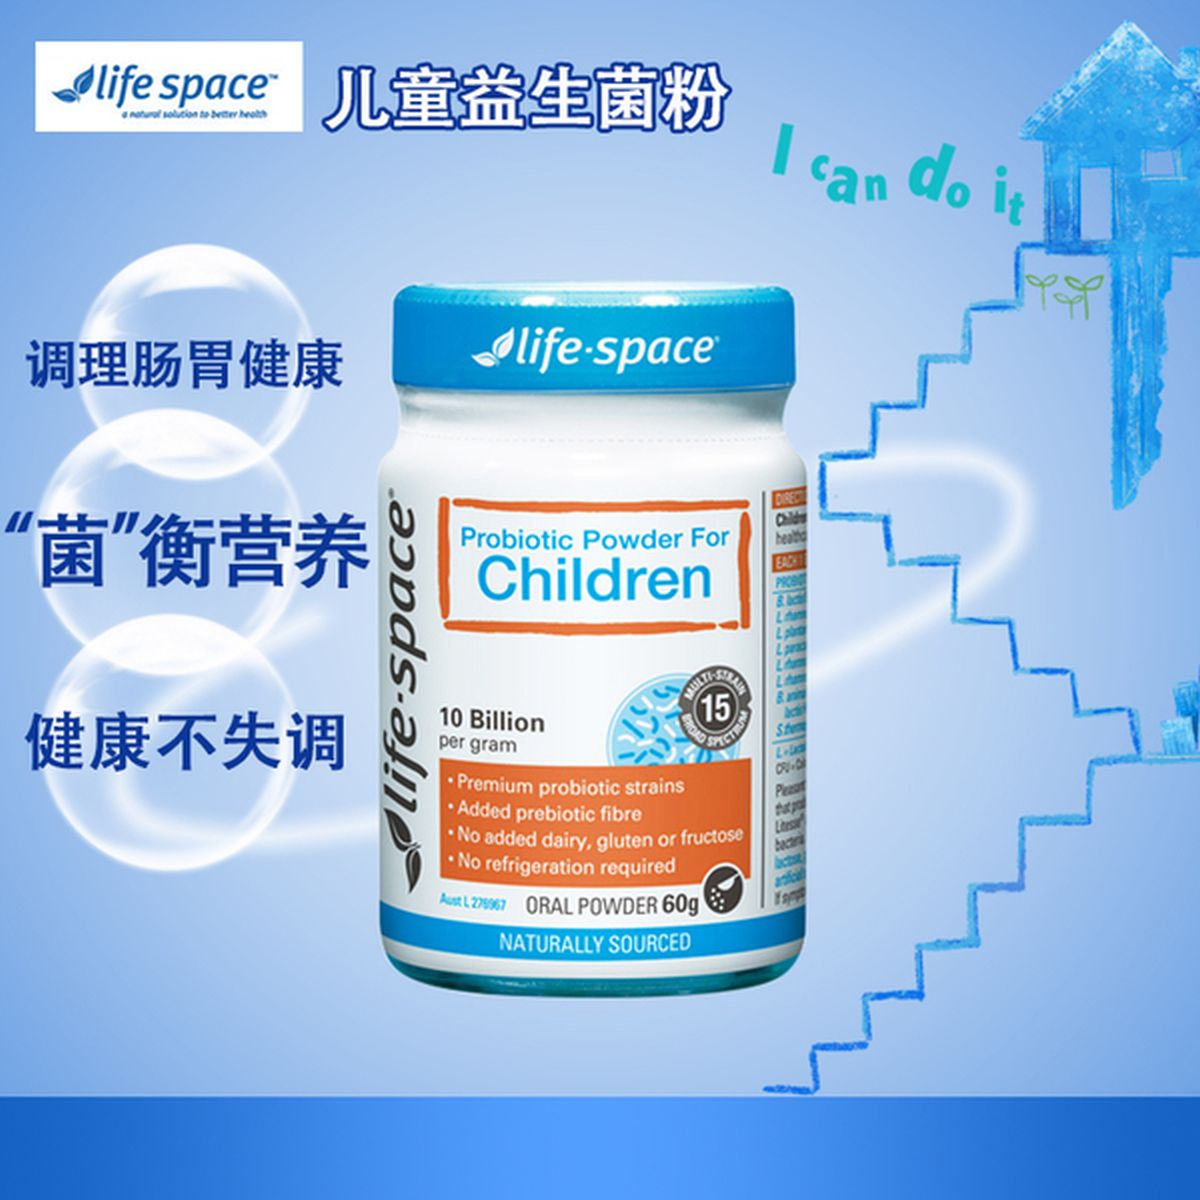 Life Space Probiotic Powder For Children 60g Healthtree